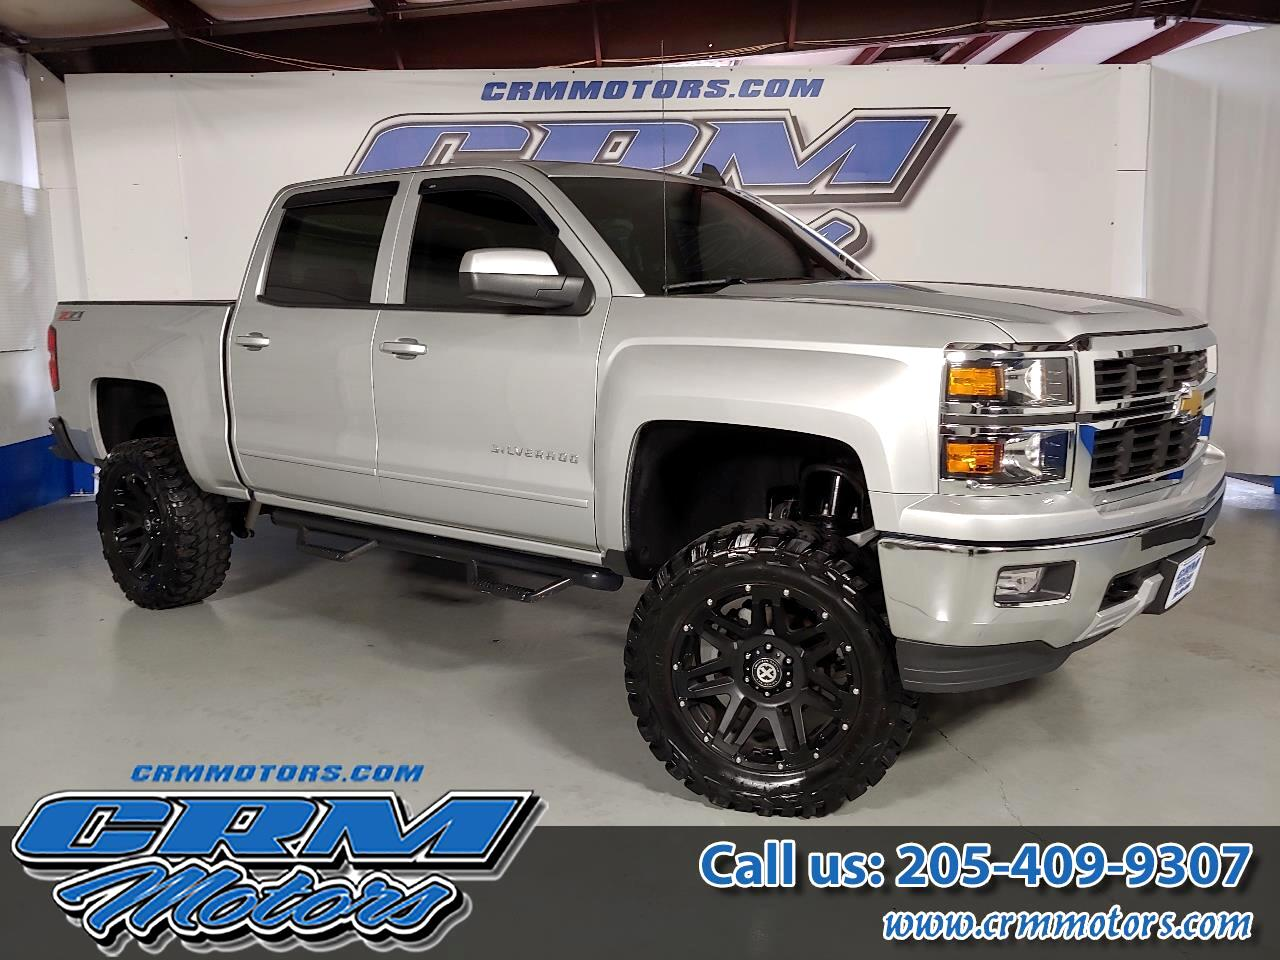 2015 Chevrolet Silverado 1500 4WD CREW CAB LT, LEATHER, 6 INCH LIFT & 37 IN TIRE